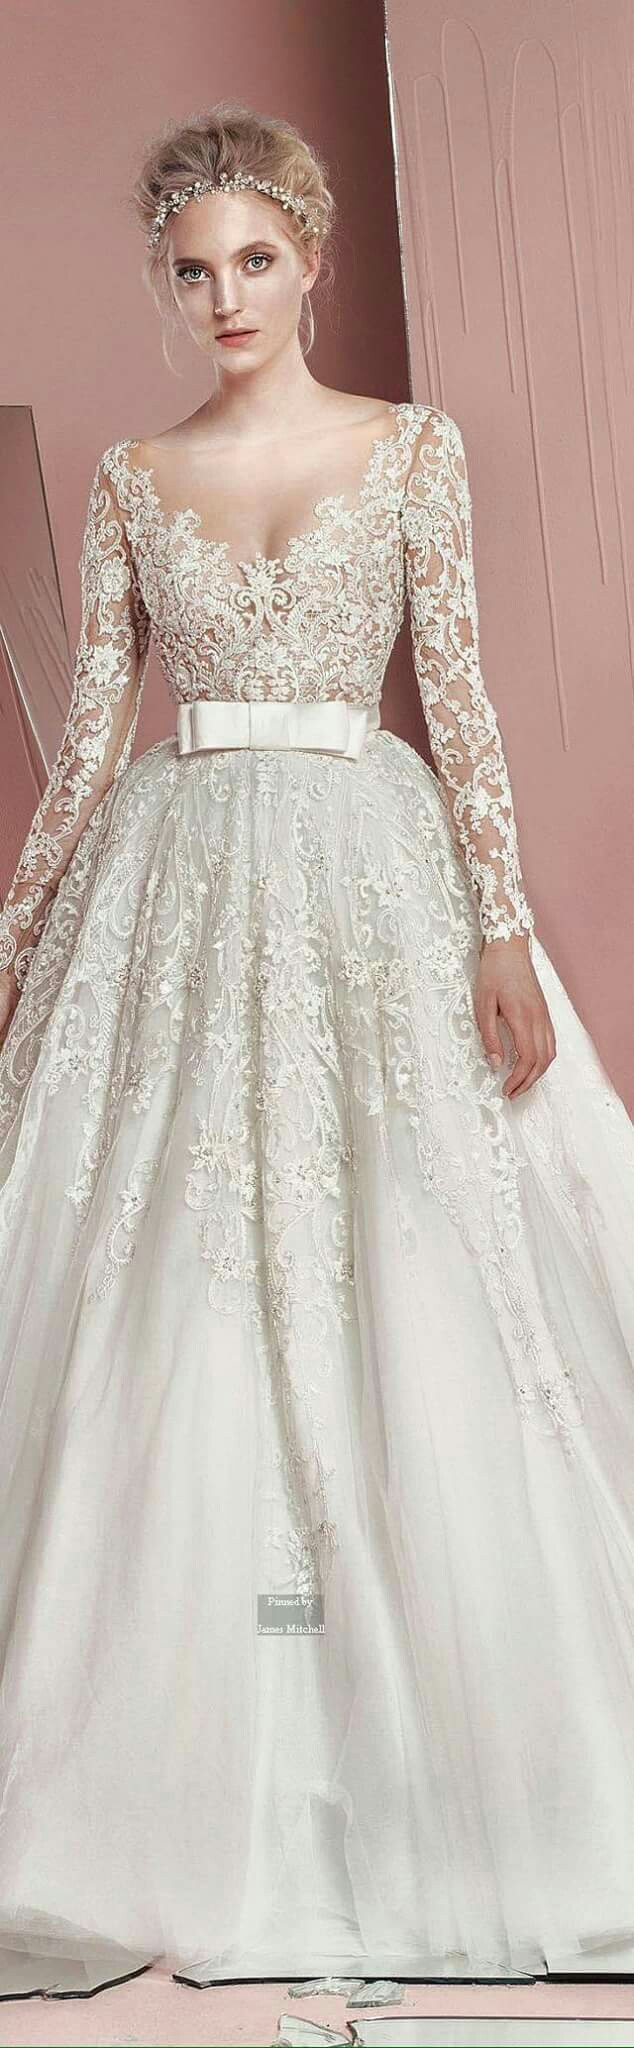 Pin von Corinne Wallace auf Wedding Dress Ideas | Pinterest